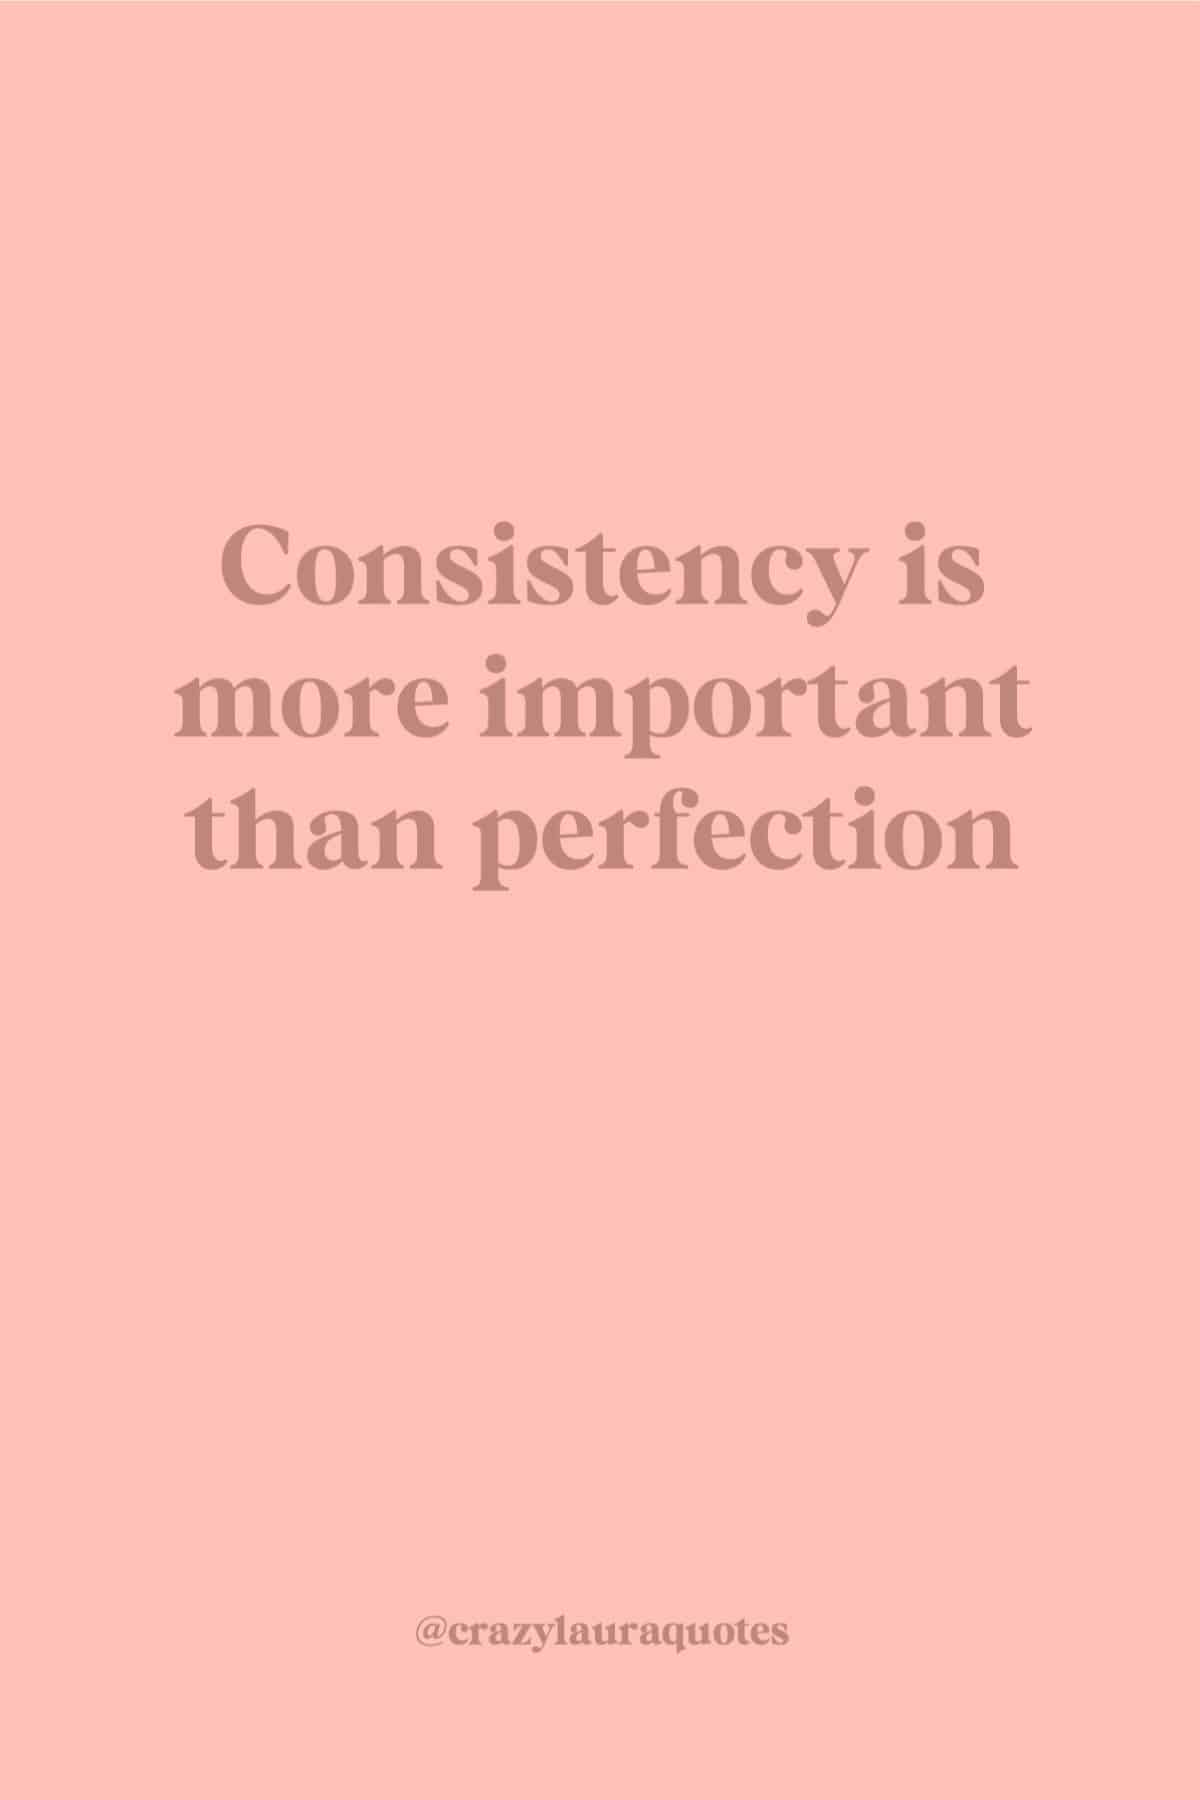 fitness saying about staying consistent